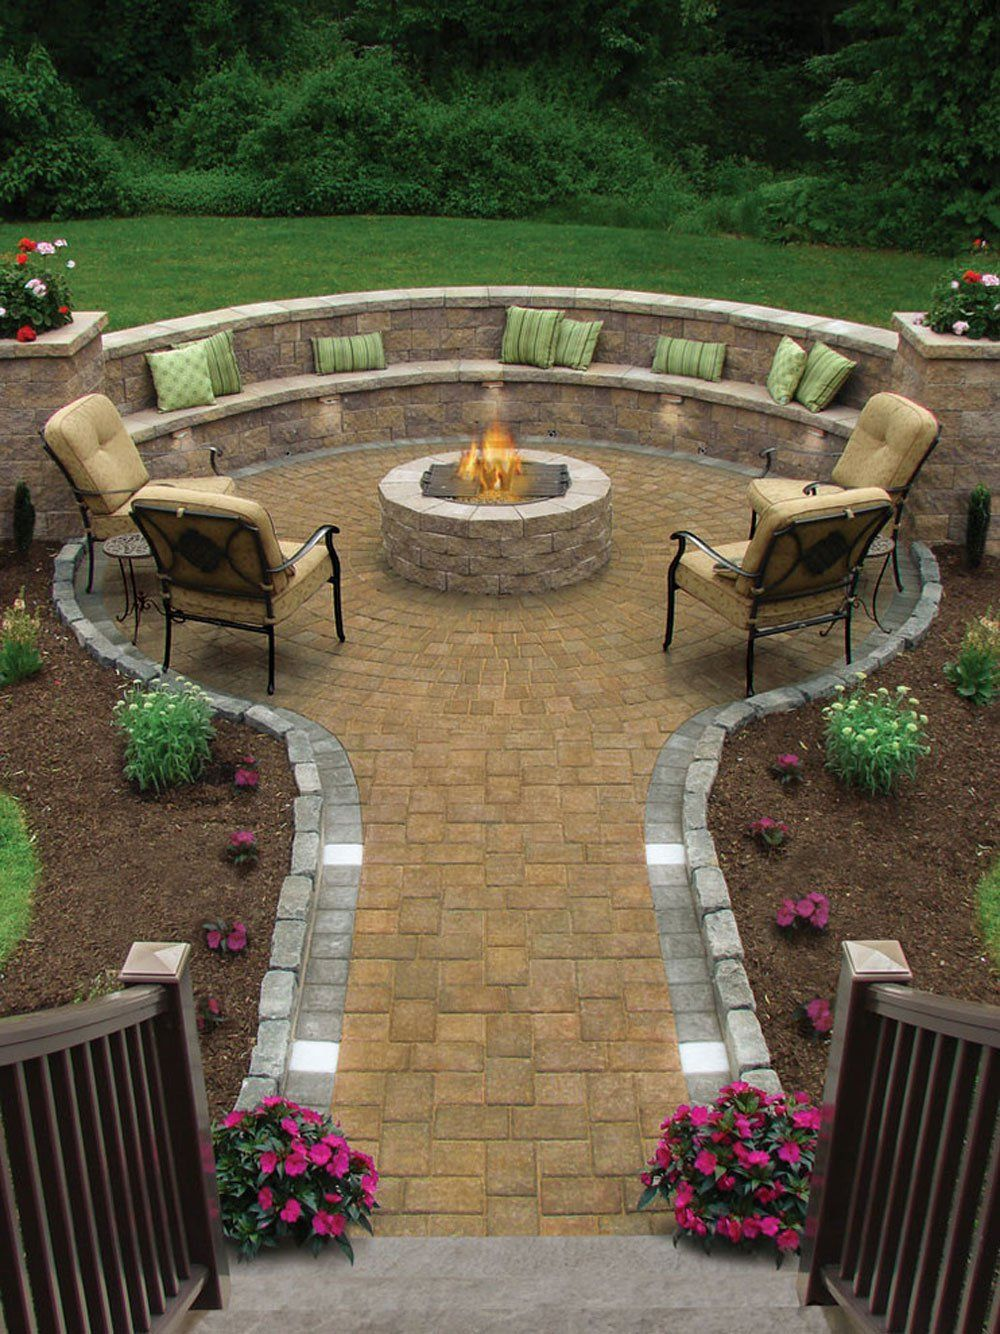 Beau 17 Of The Most Amazing Seating Area Around The Fire Pit EVER